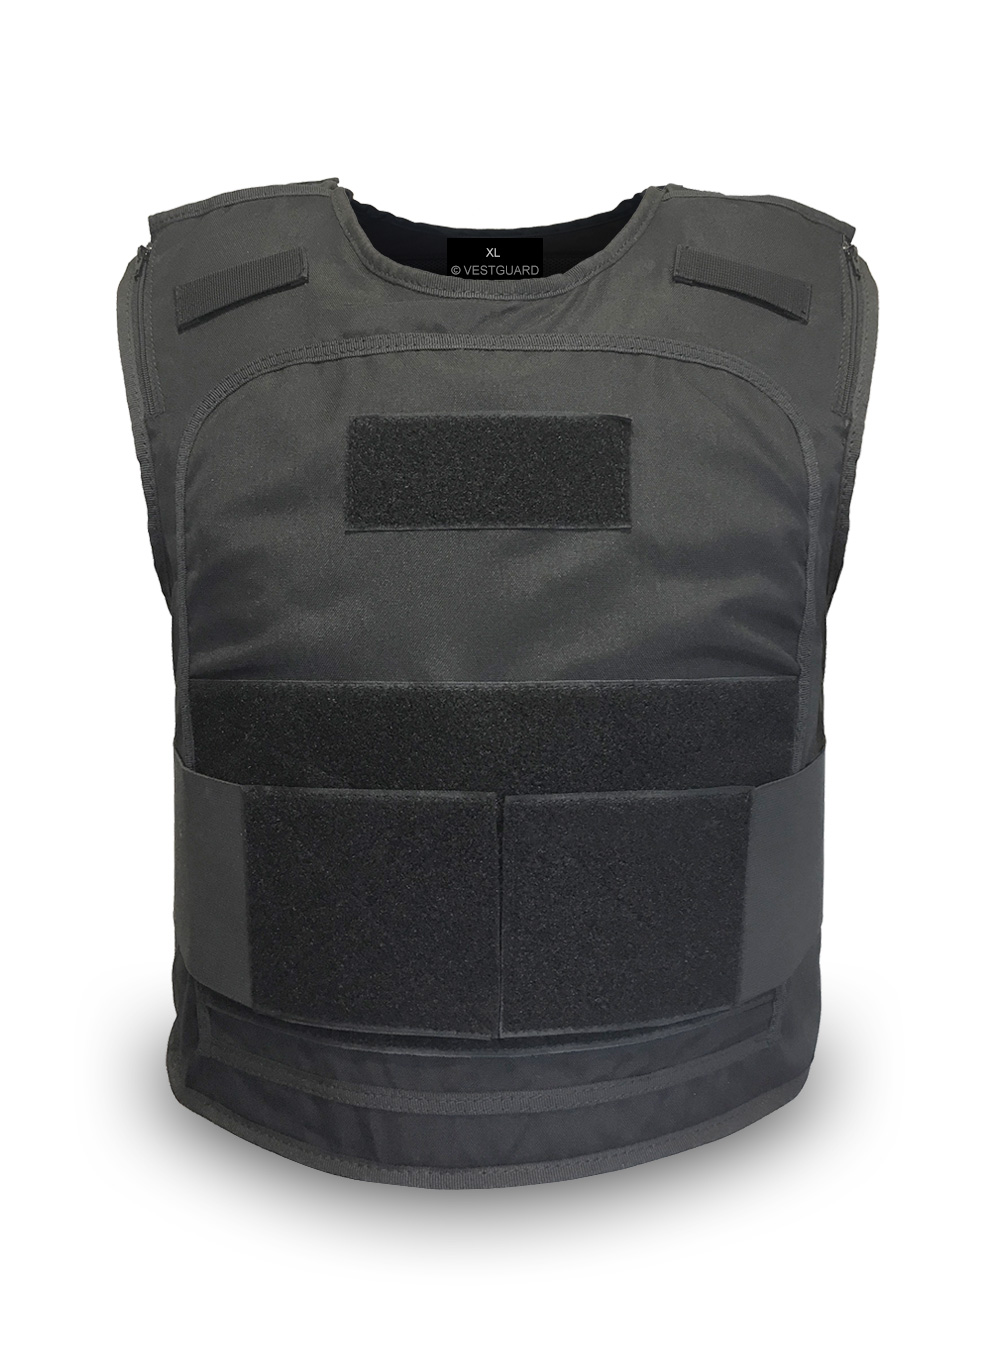 Global Security Body Armour Outer Cover